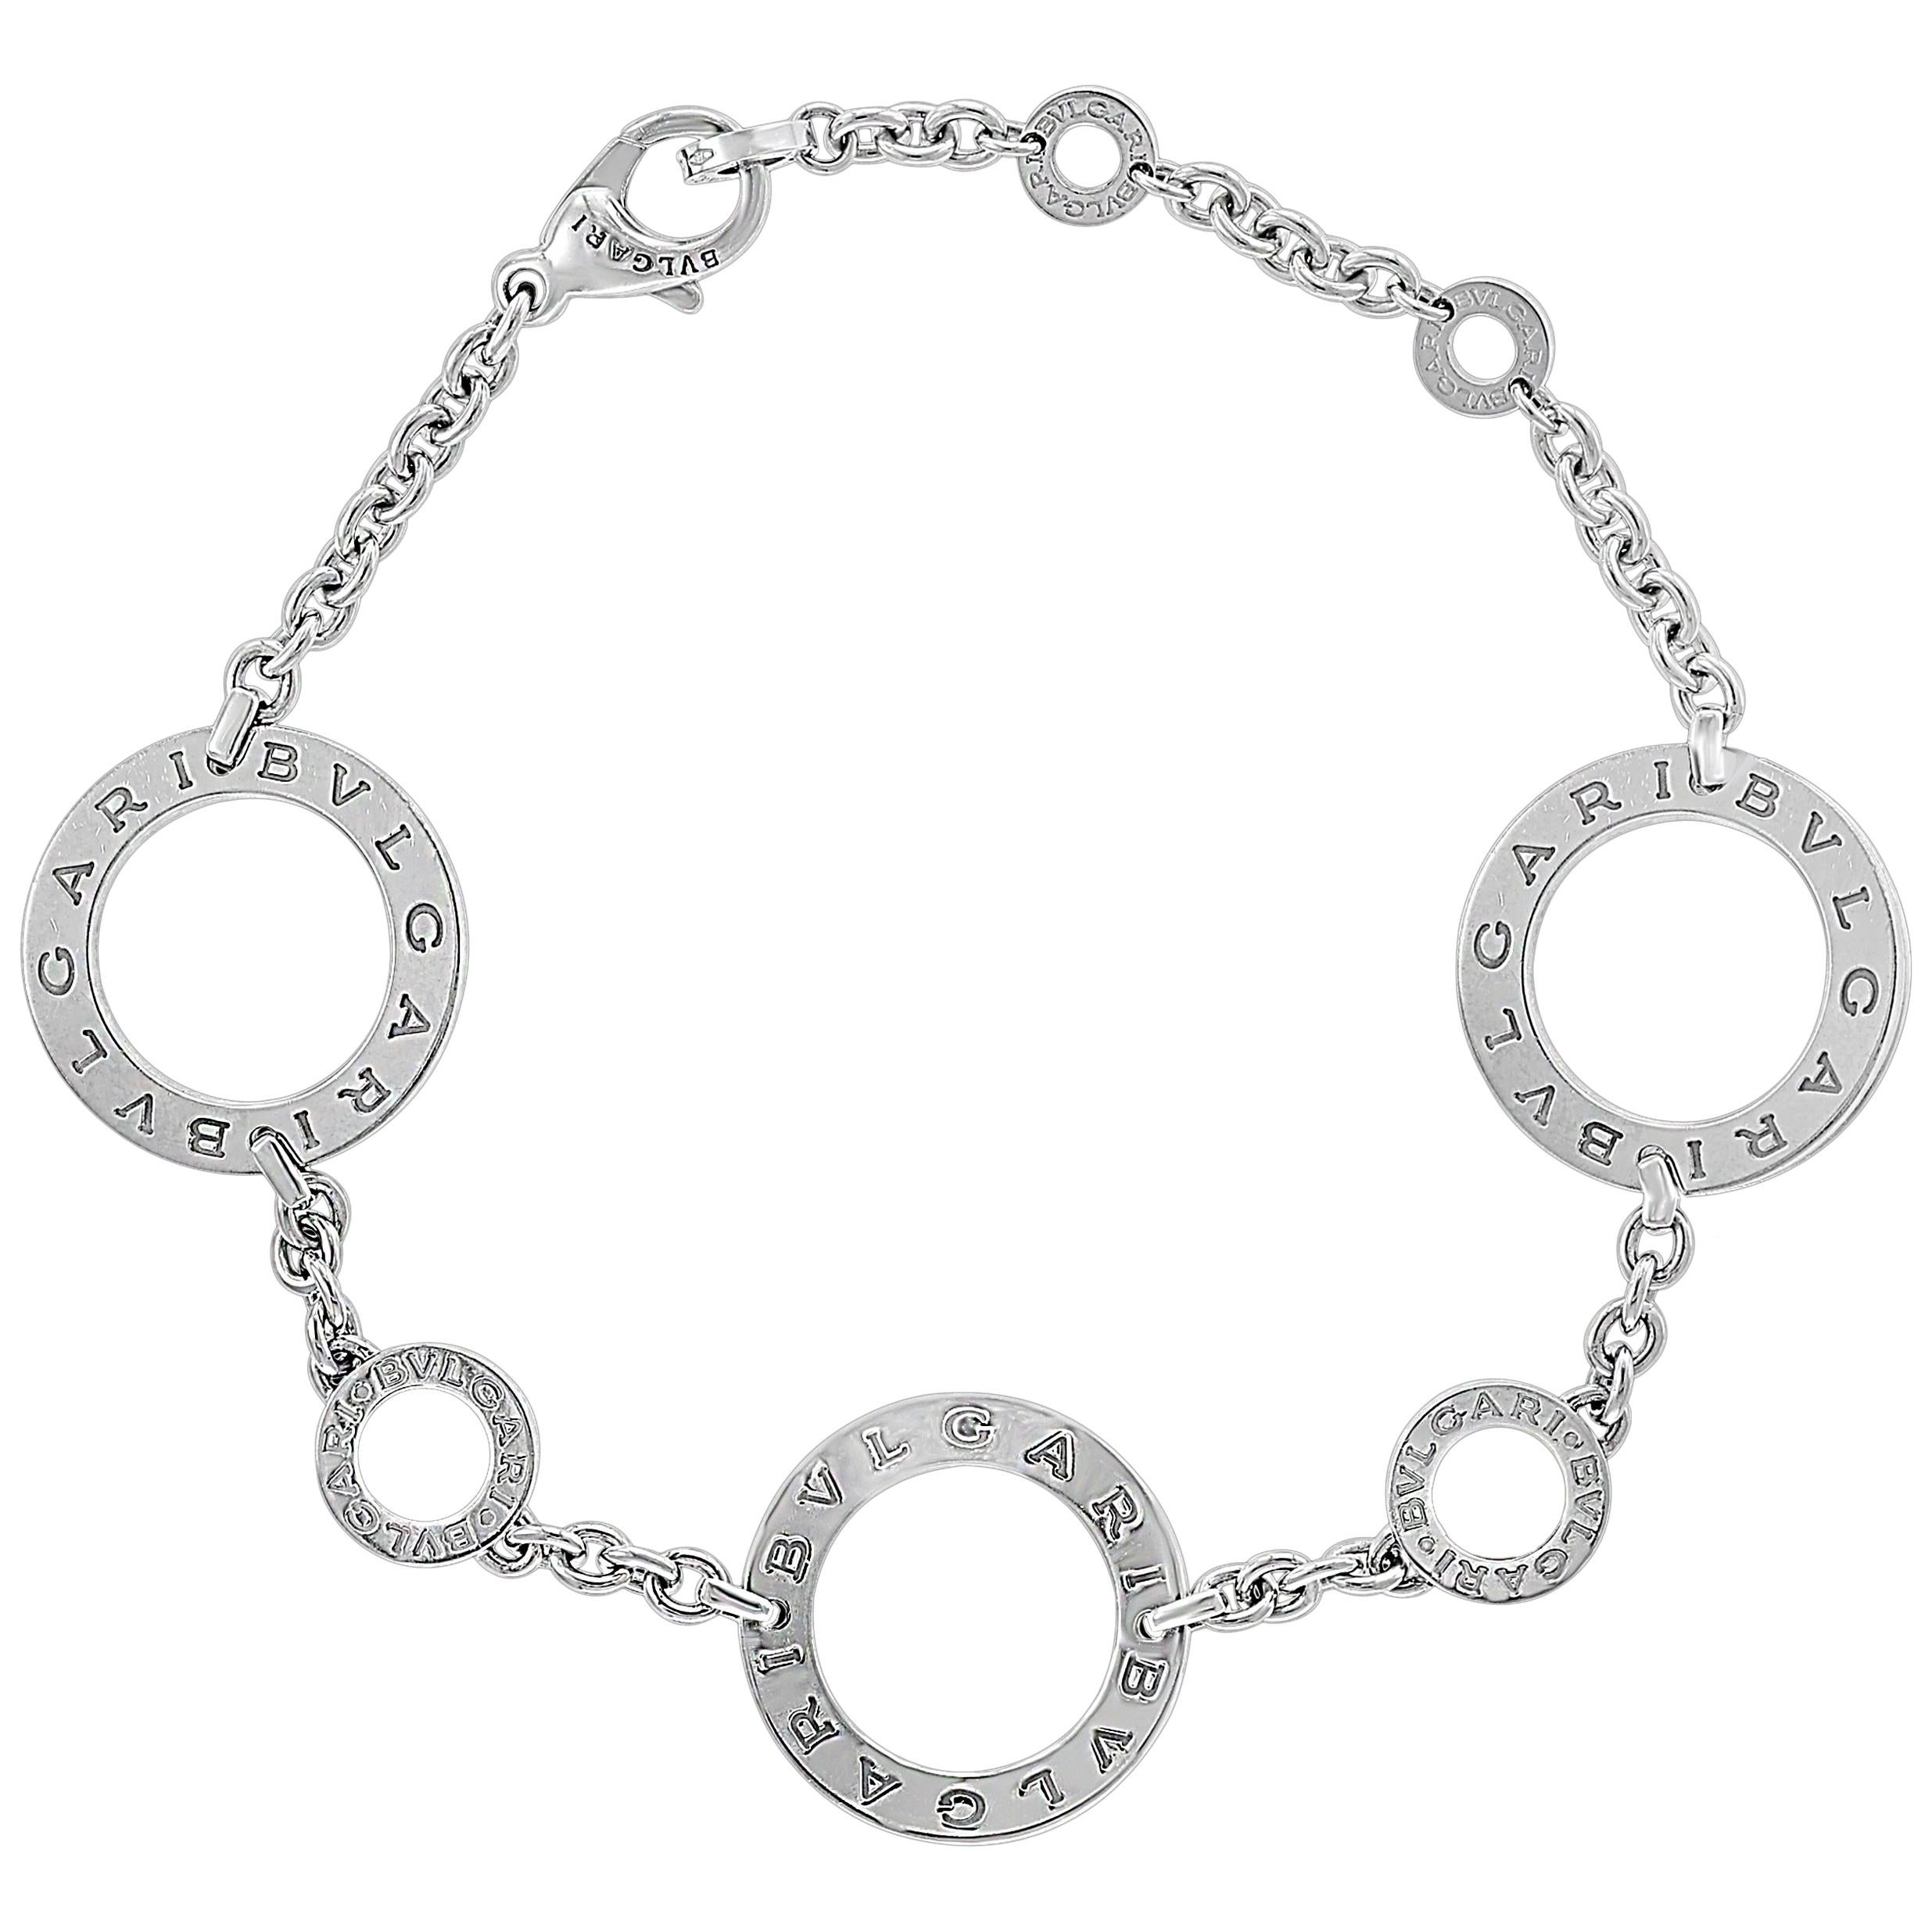 23d04d10fd663 Late 20th Century Chain Bracelets - 103 For Sale at 1stdibs